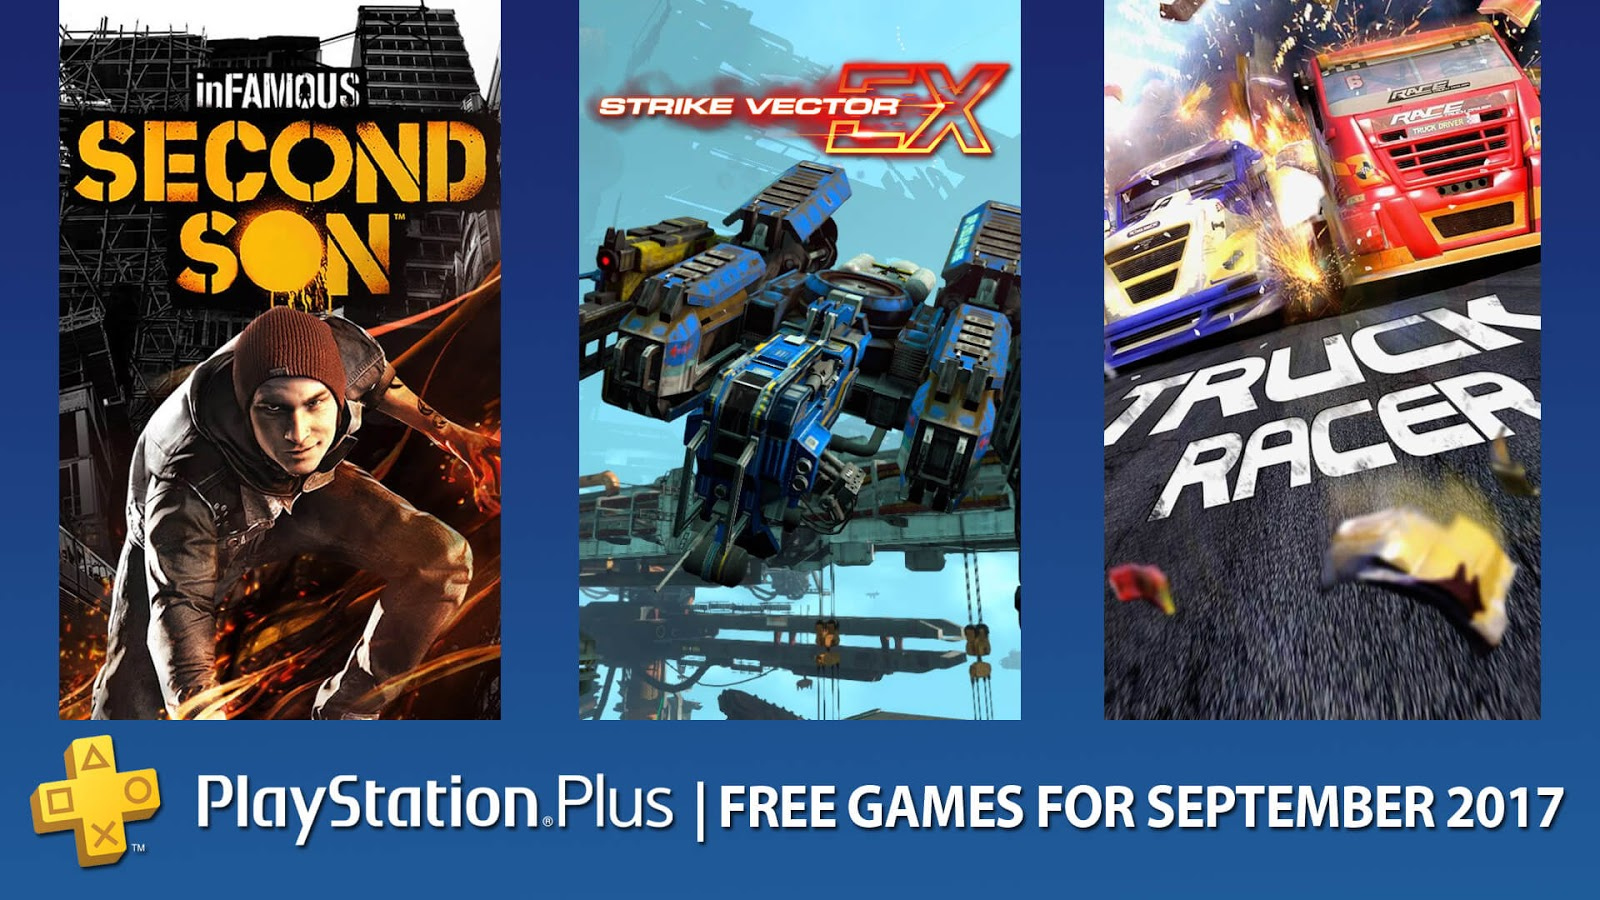 PlayStation Plus Free Games For September 2017 - Gameslaught